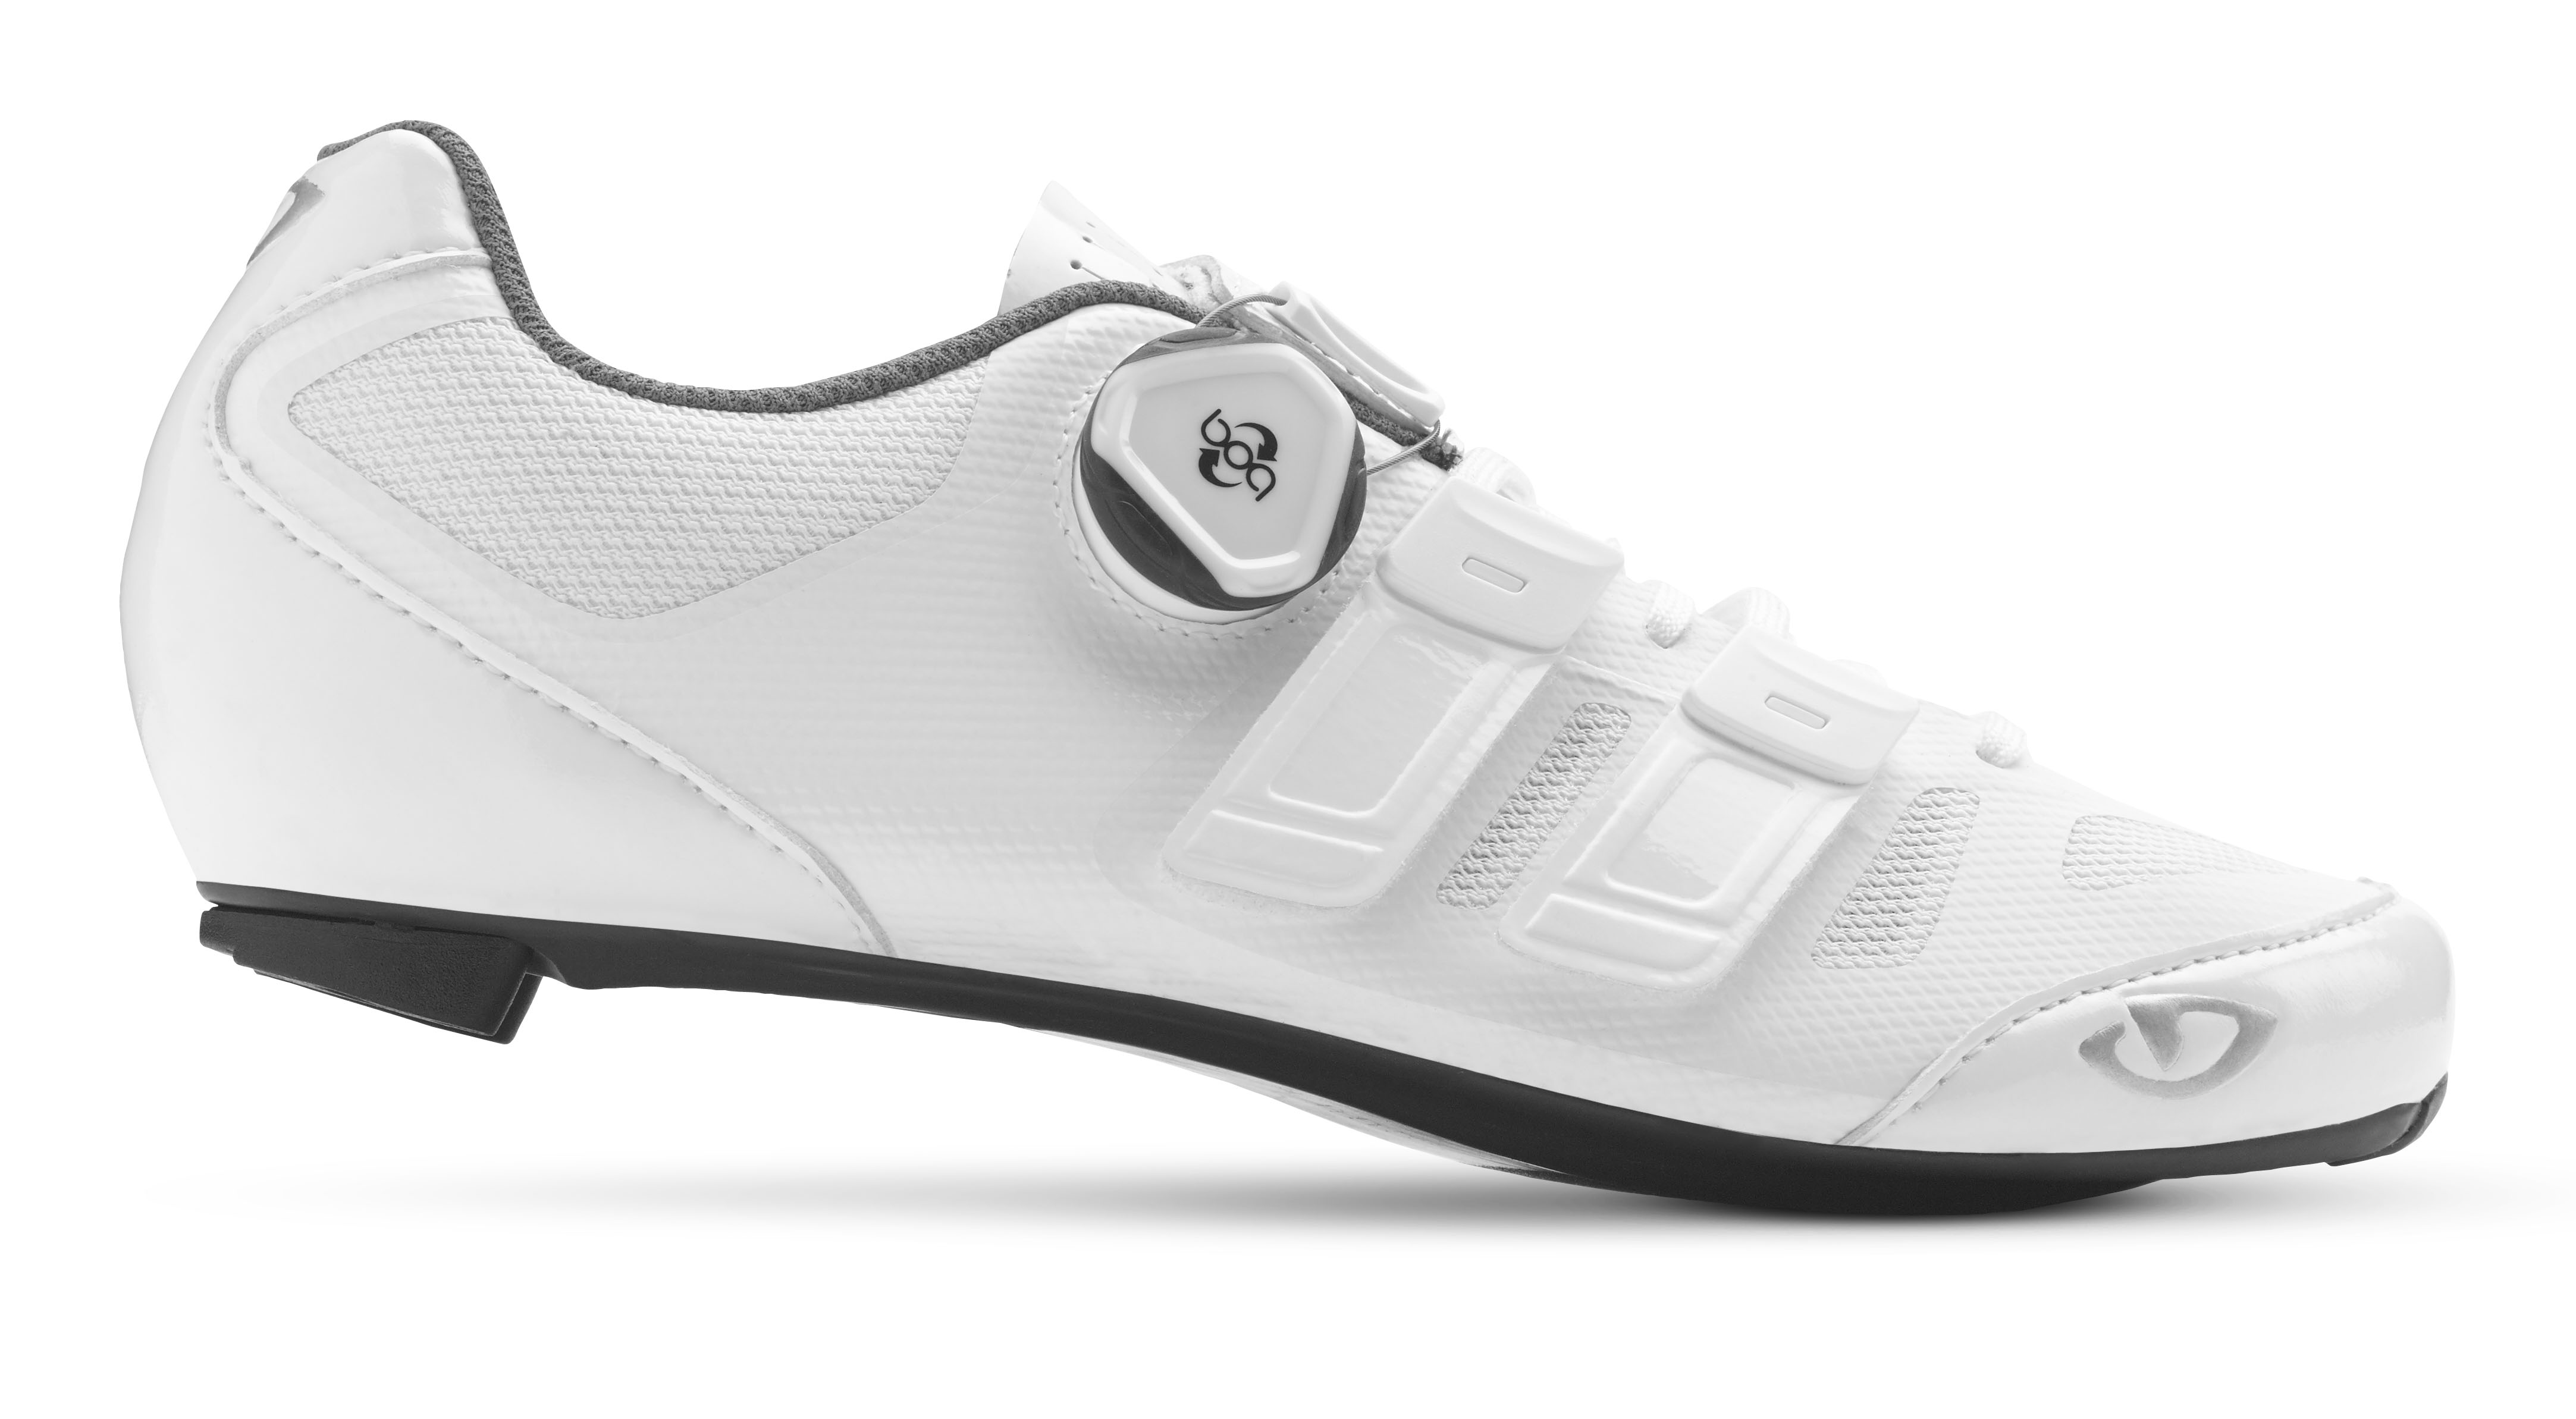 Giro cykelsko Raes Techlace W Hvid 39 Women HVID 39 | Shoes and overlays